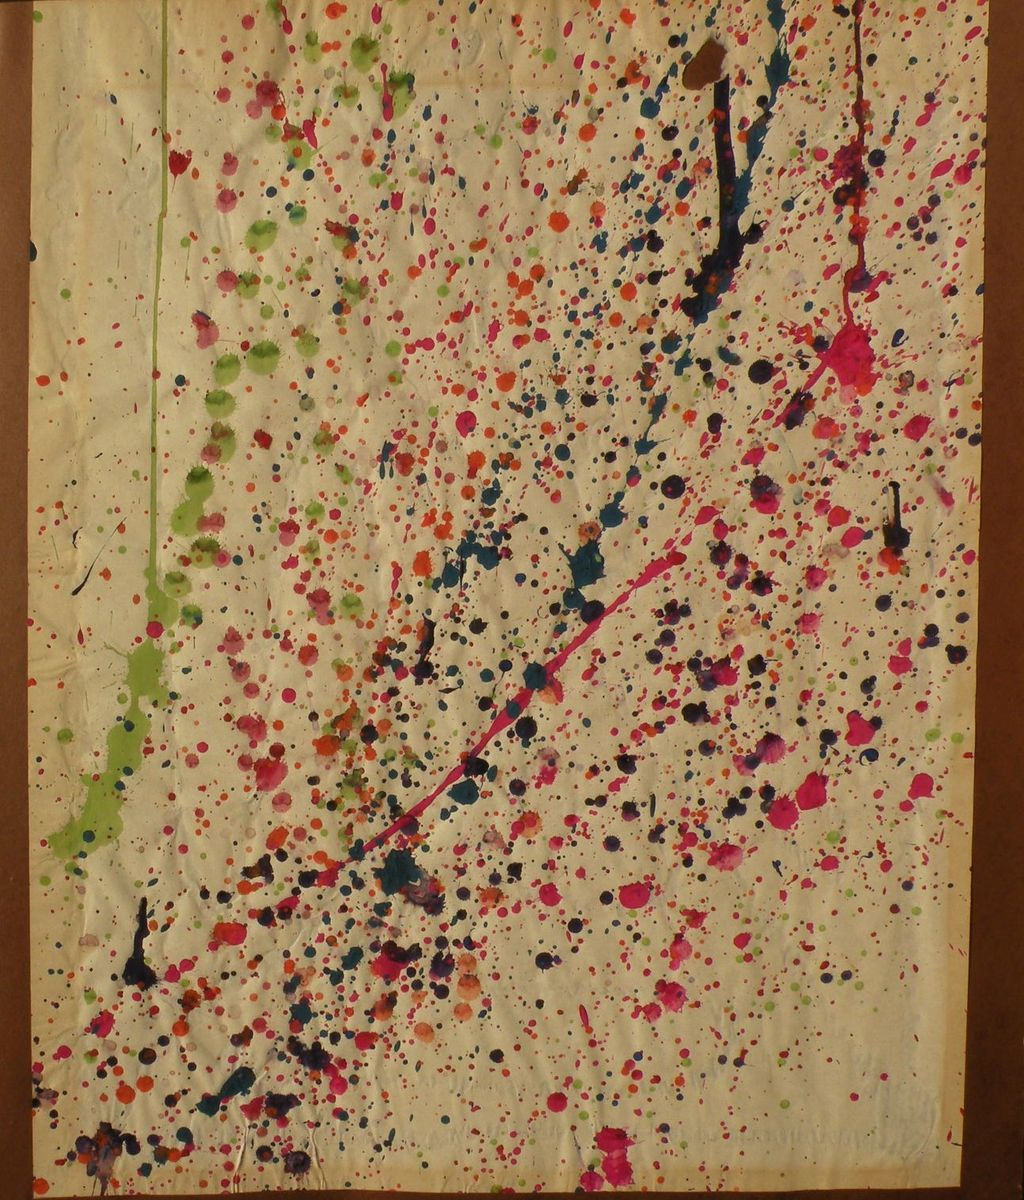 Mid century abstract American art circa 1960's drip painting on paper